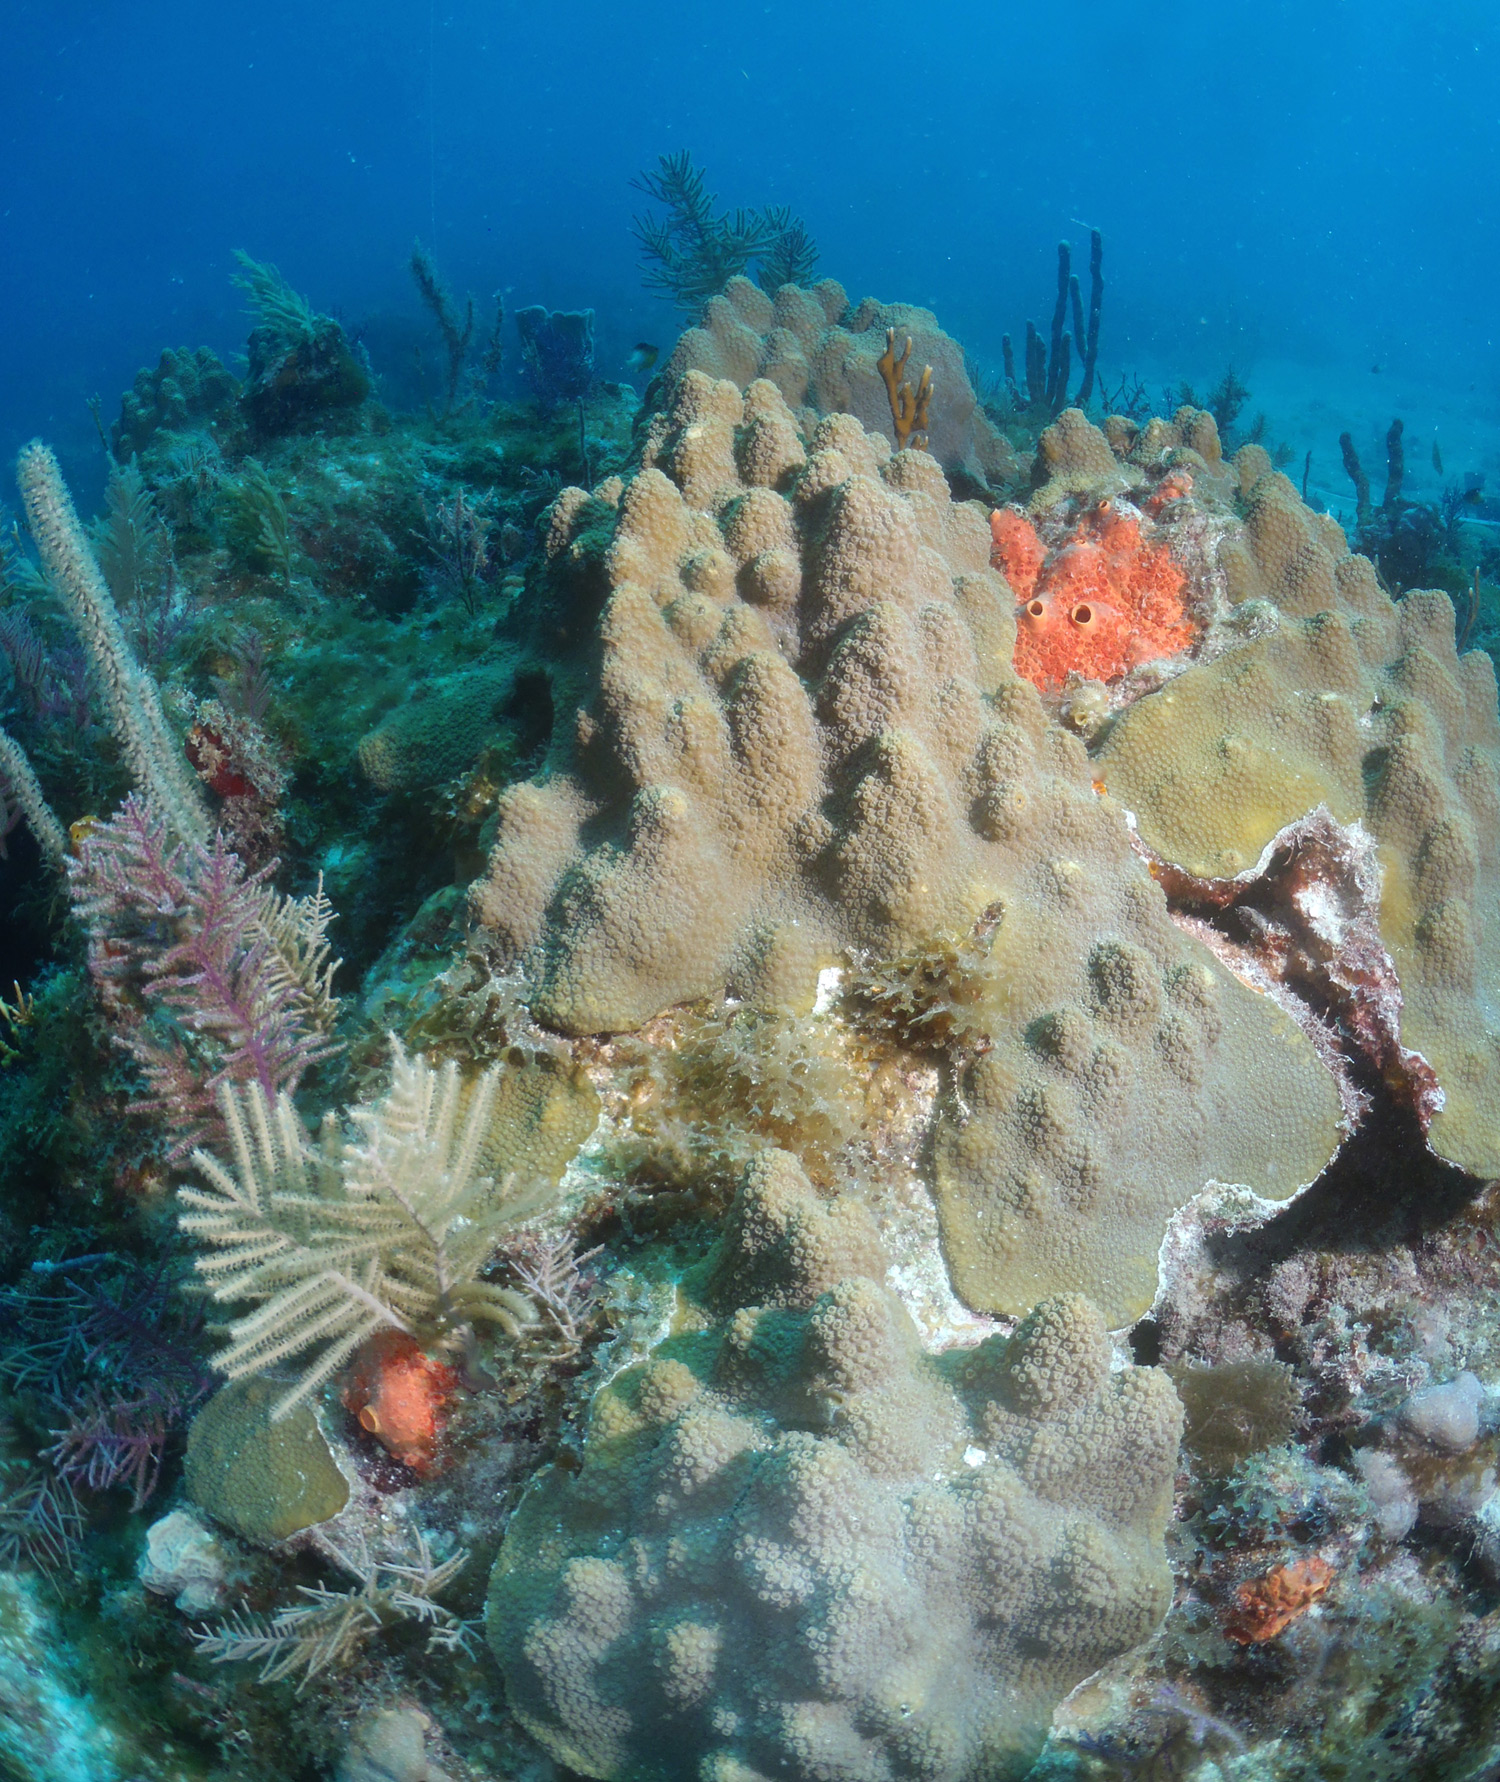 Protect Florida Keys Corals And The Coral Reef Ecosystem?